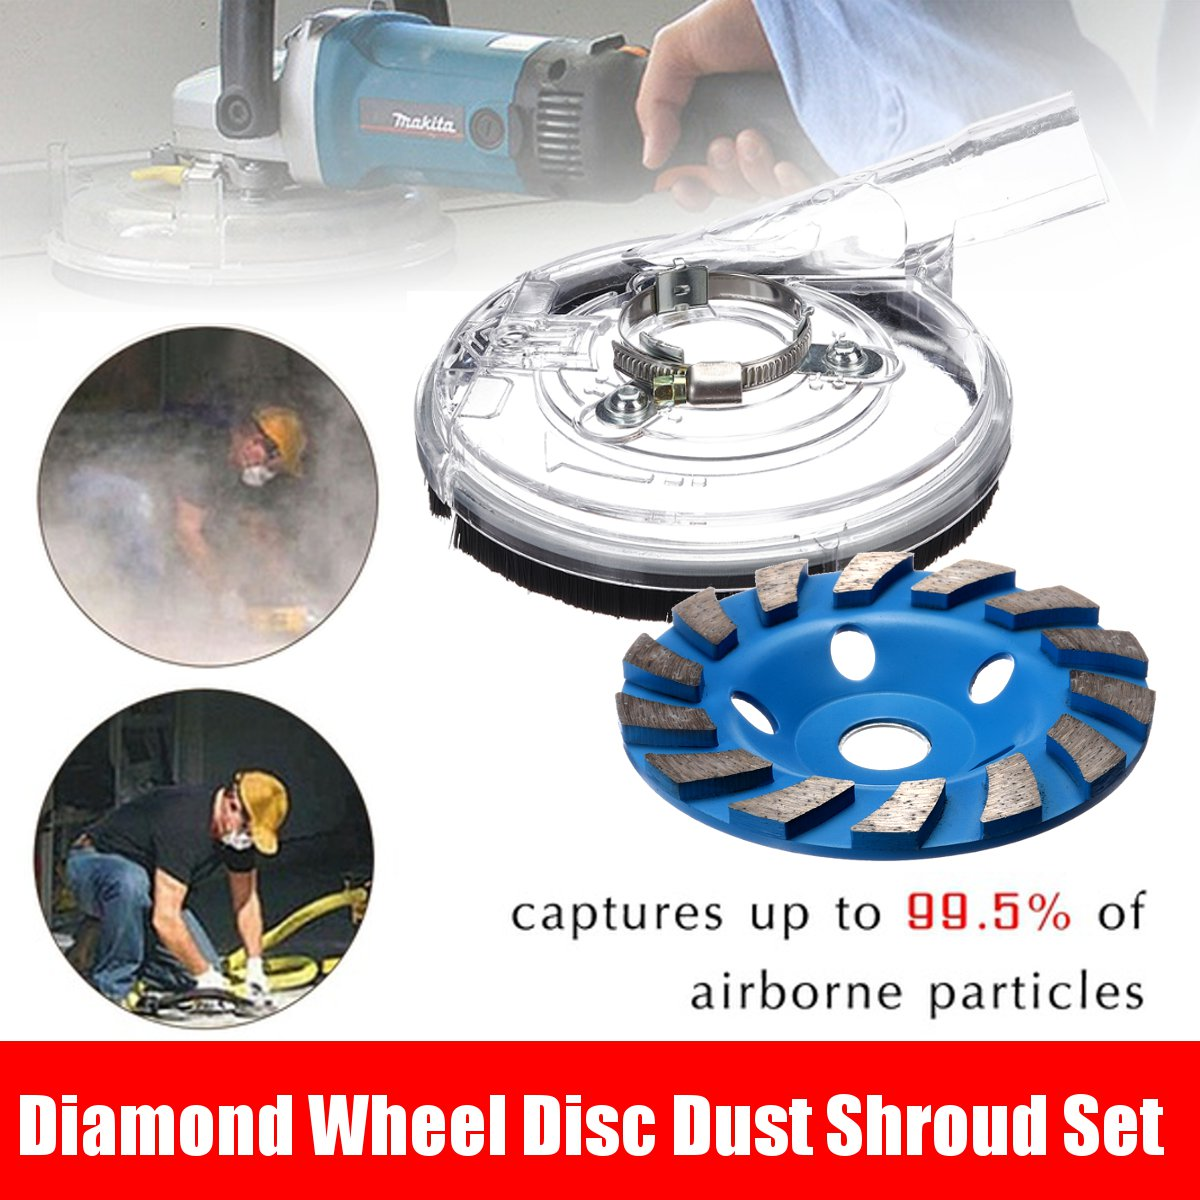 B-125A5 Dust Shroud Kit Dry Grinding Dust Cover For 125 Angle Grinder 80-125mm Hand Grinder Clear Vacuum Dust